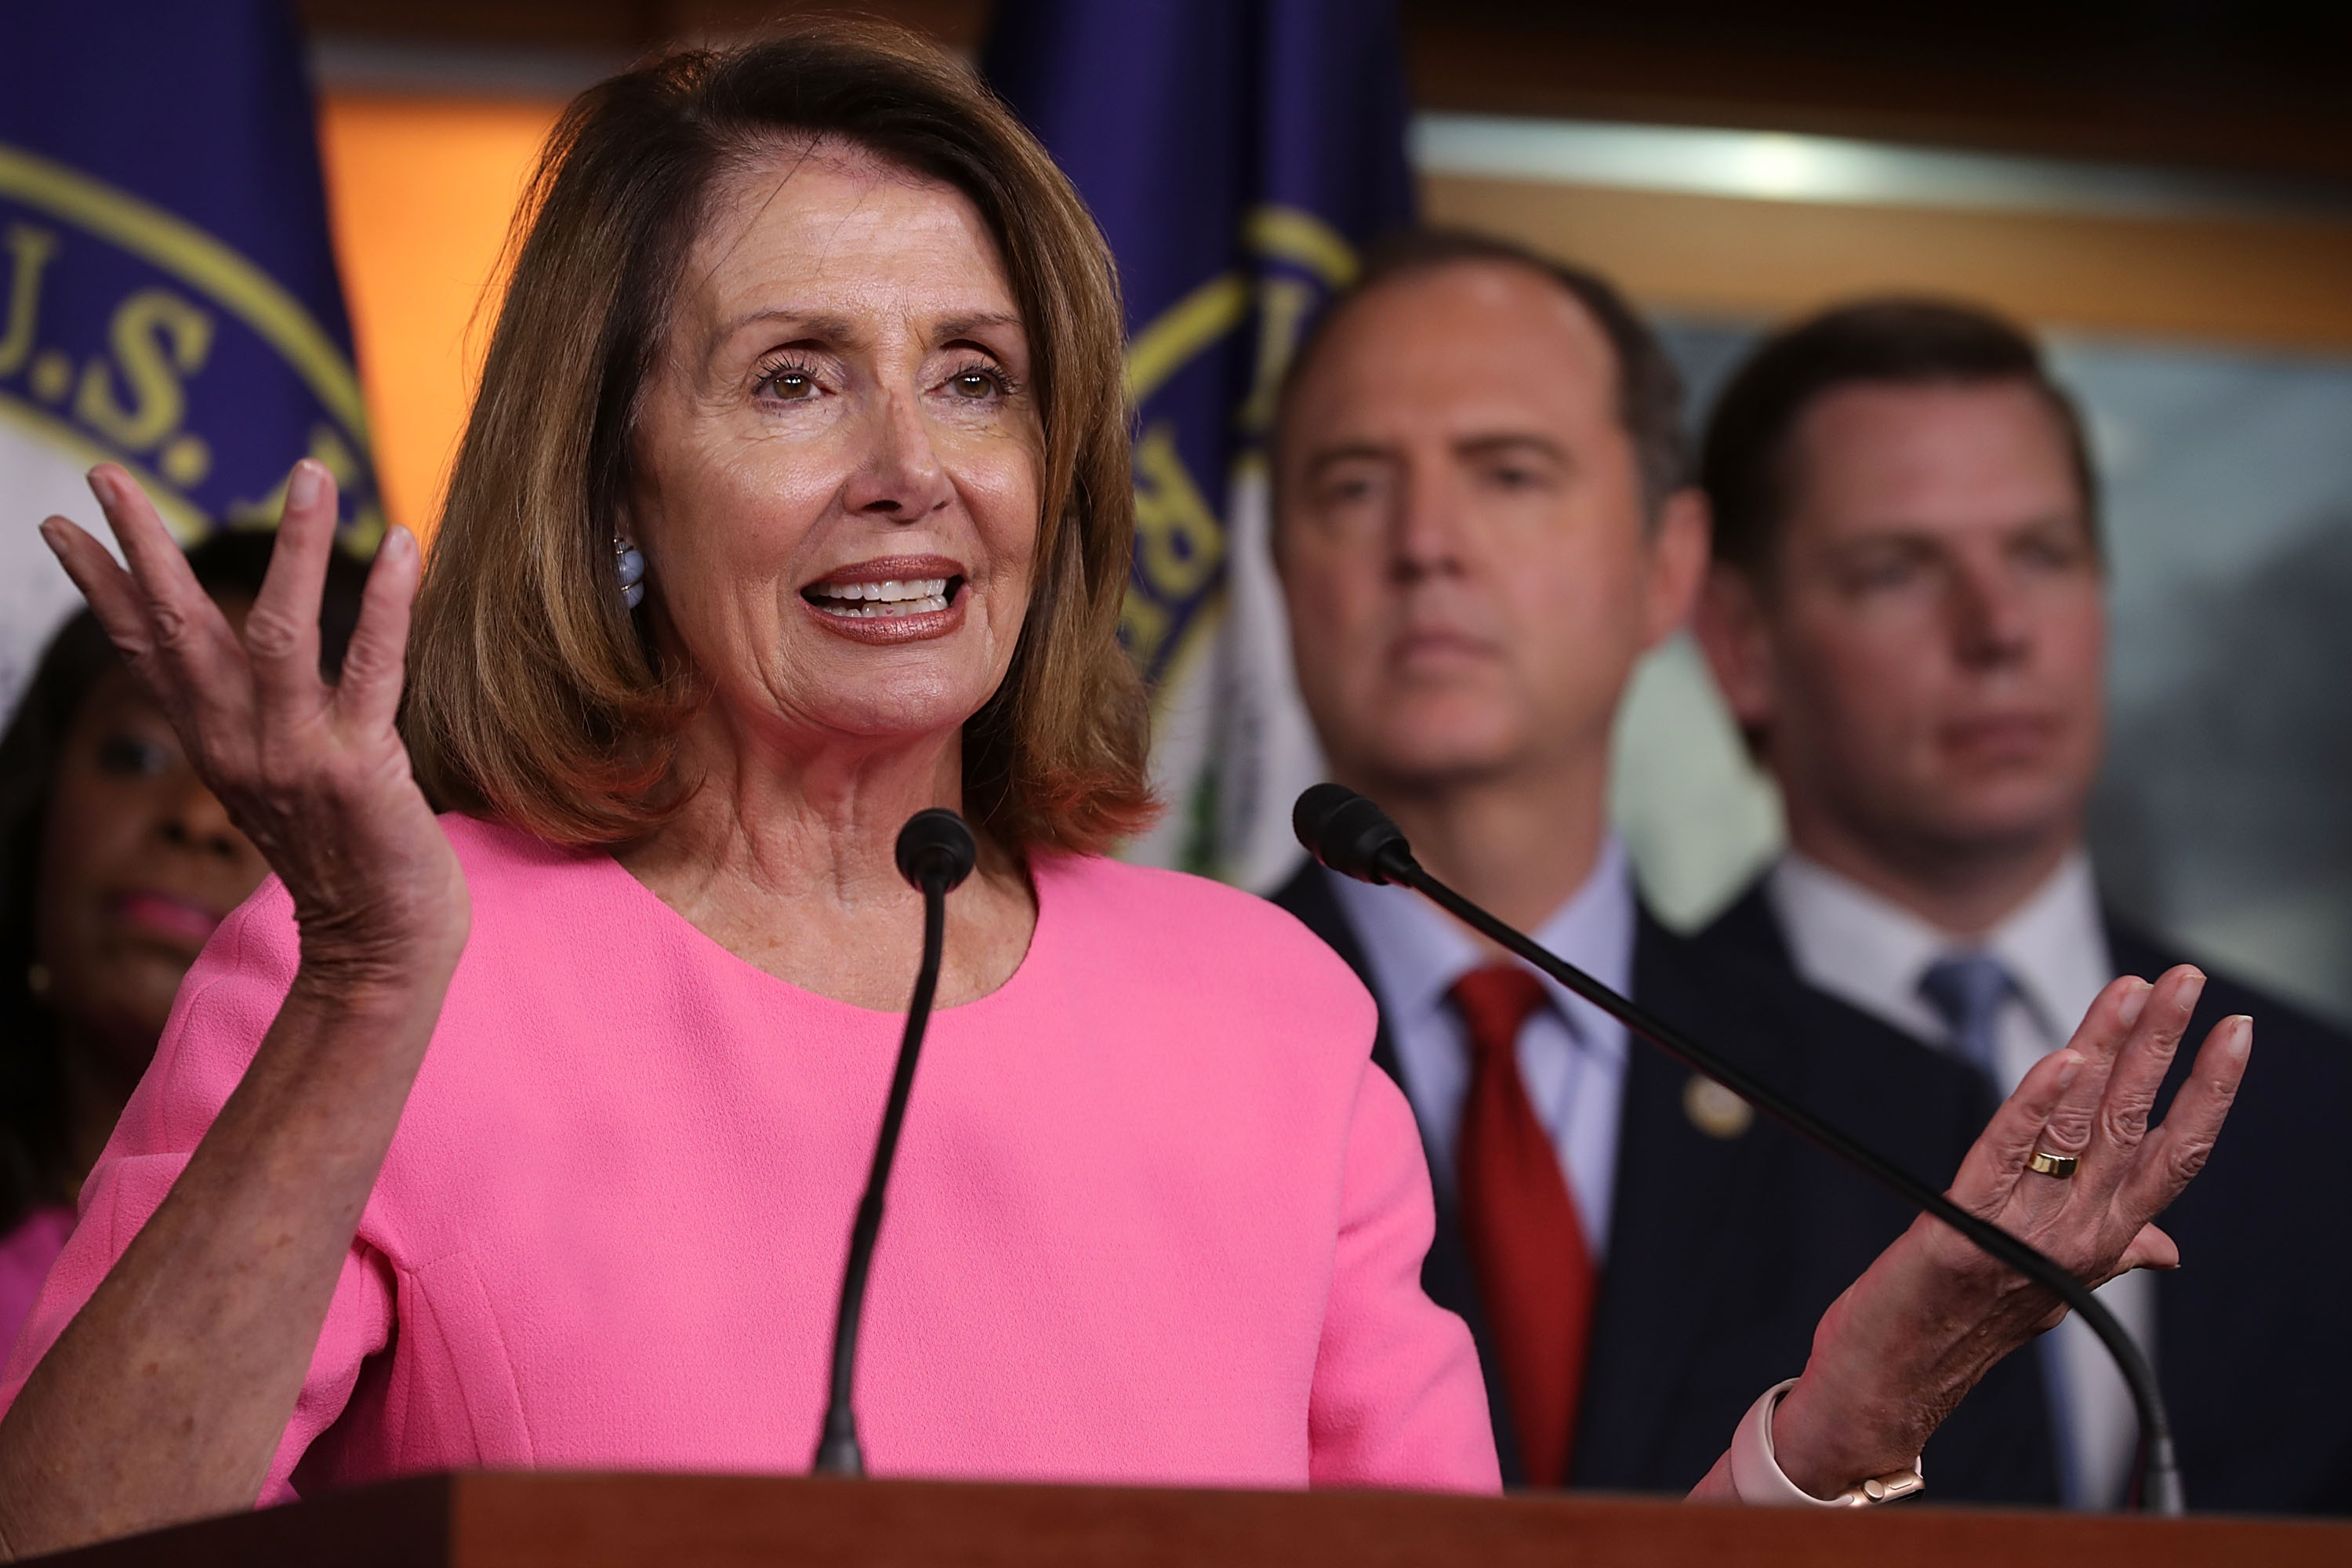 House Minority Leader Nancy Pelosi speaks during a news conference with Democratic members of the House Intelligence Committee on July 17, 2018.